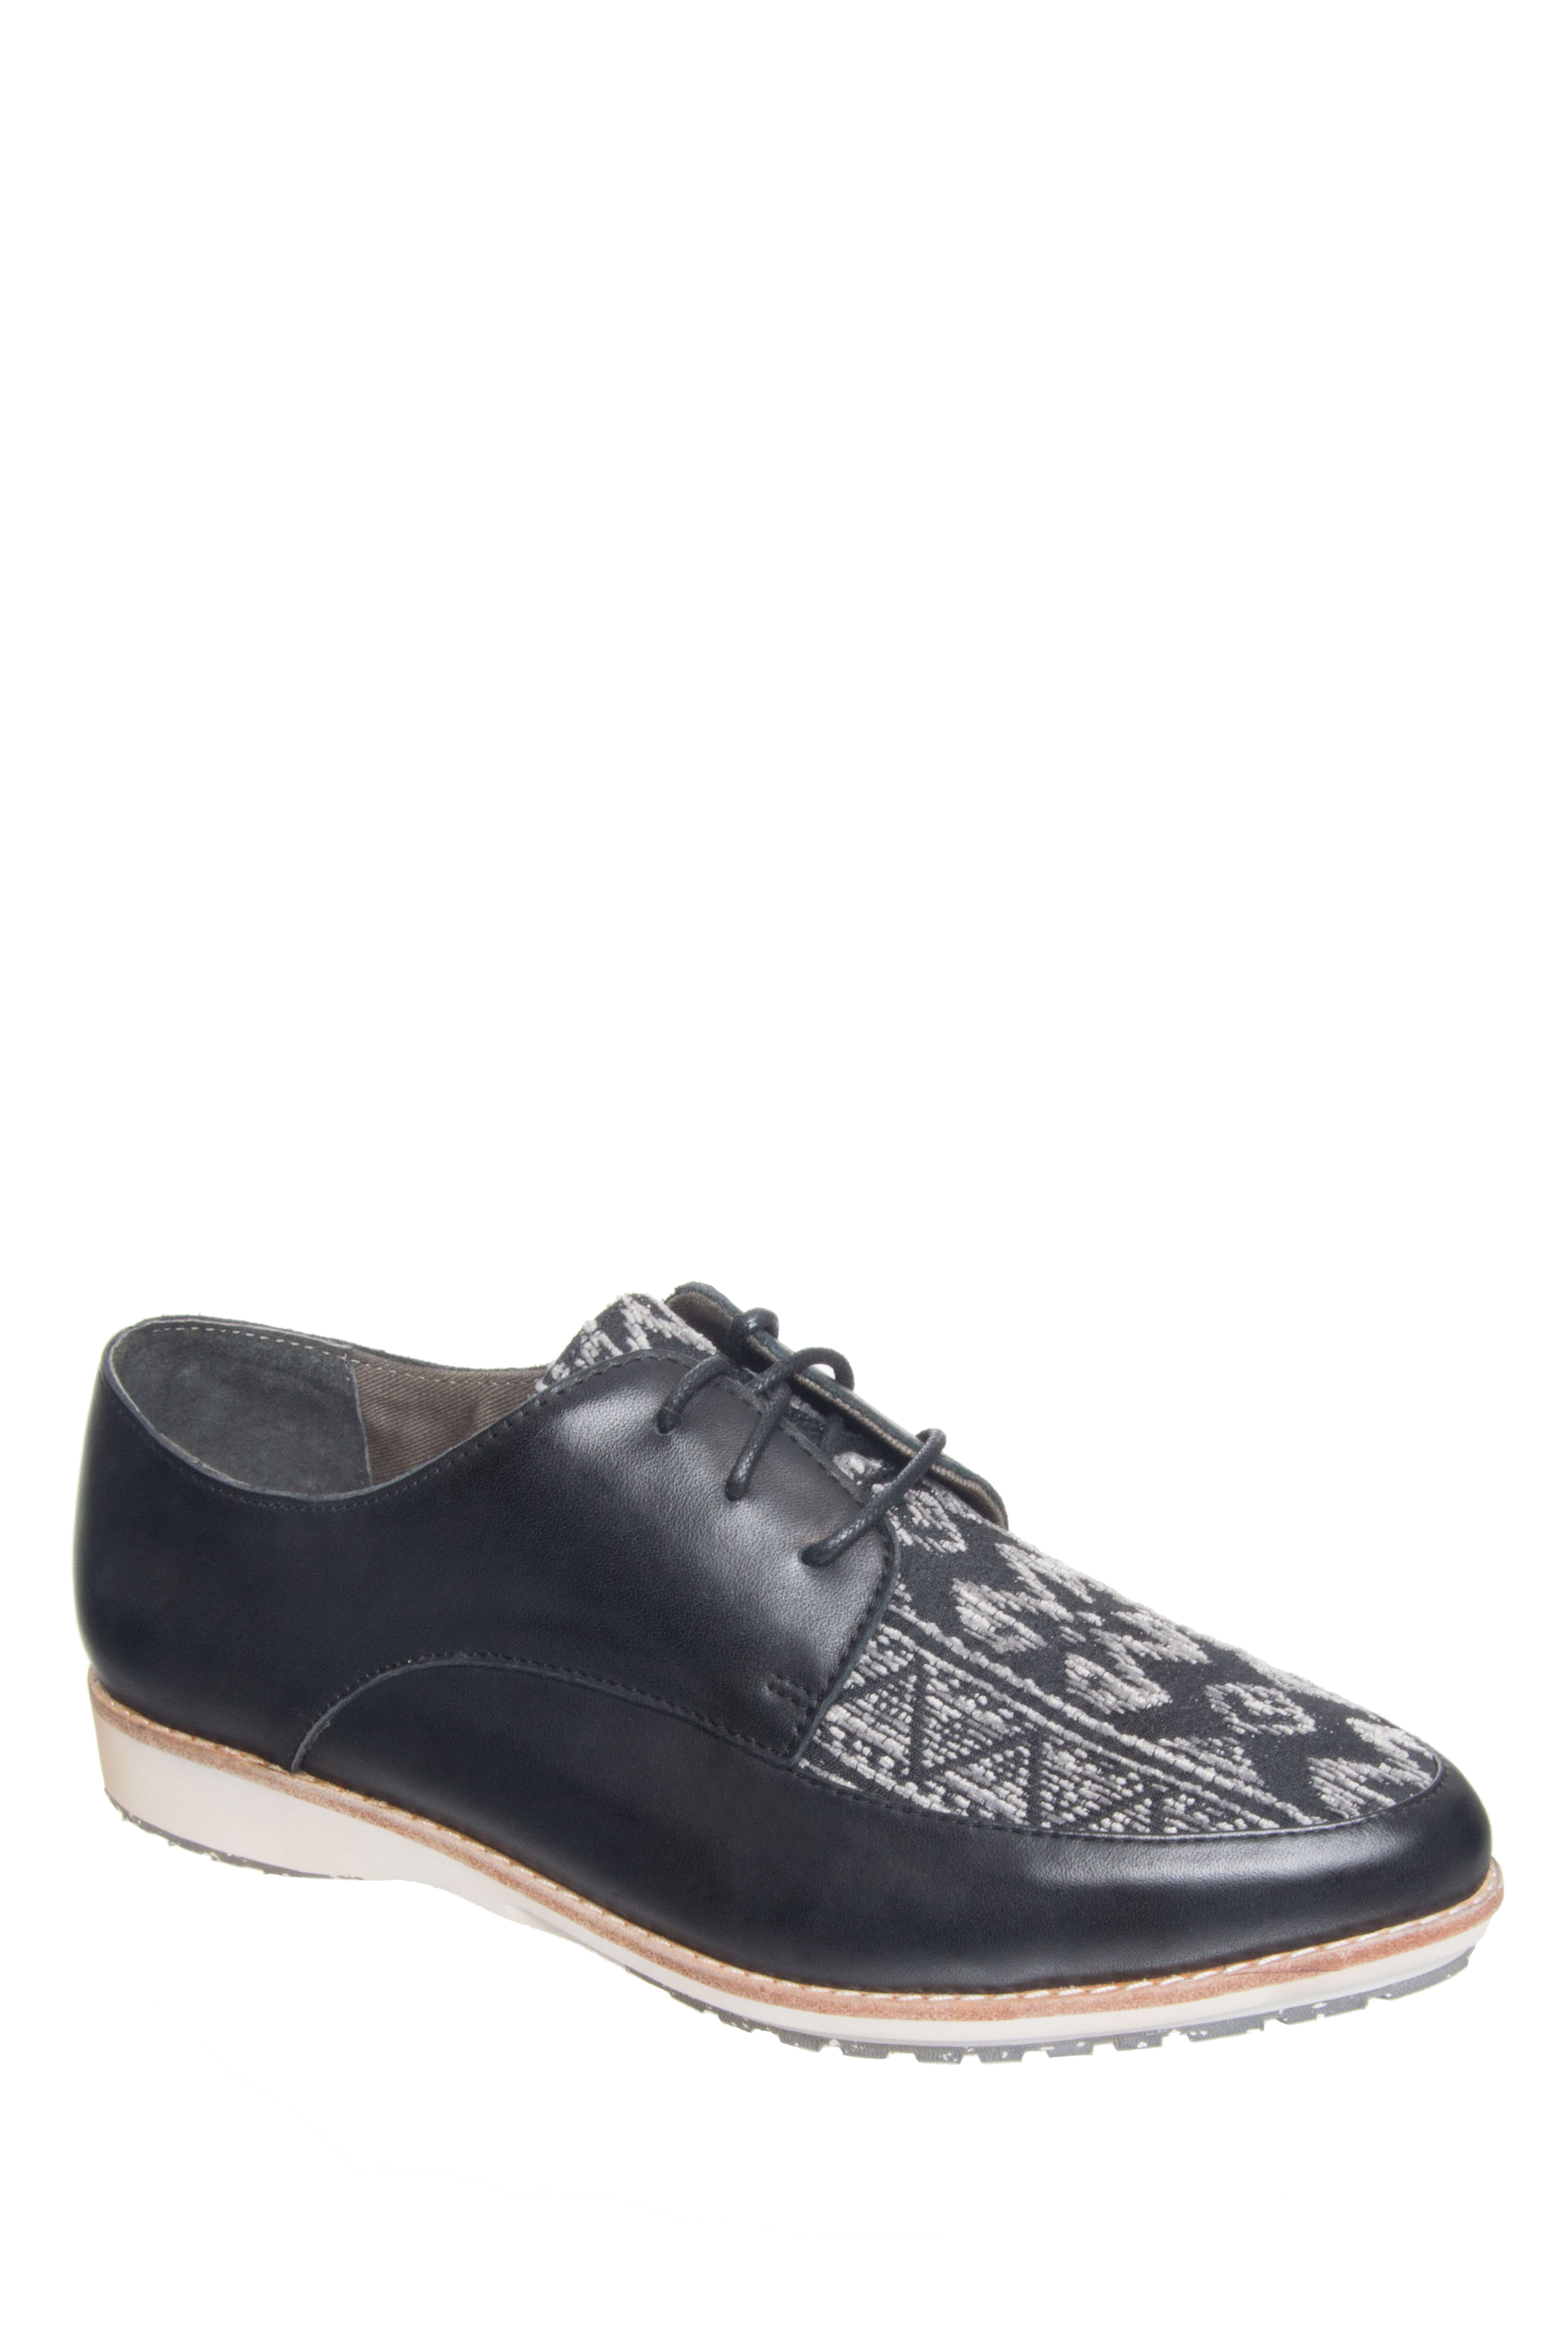 Rollie Nation Madison Derby Oxford  - Black Aztec